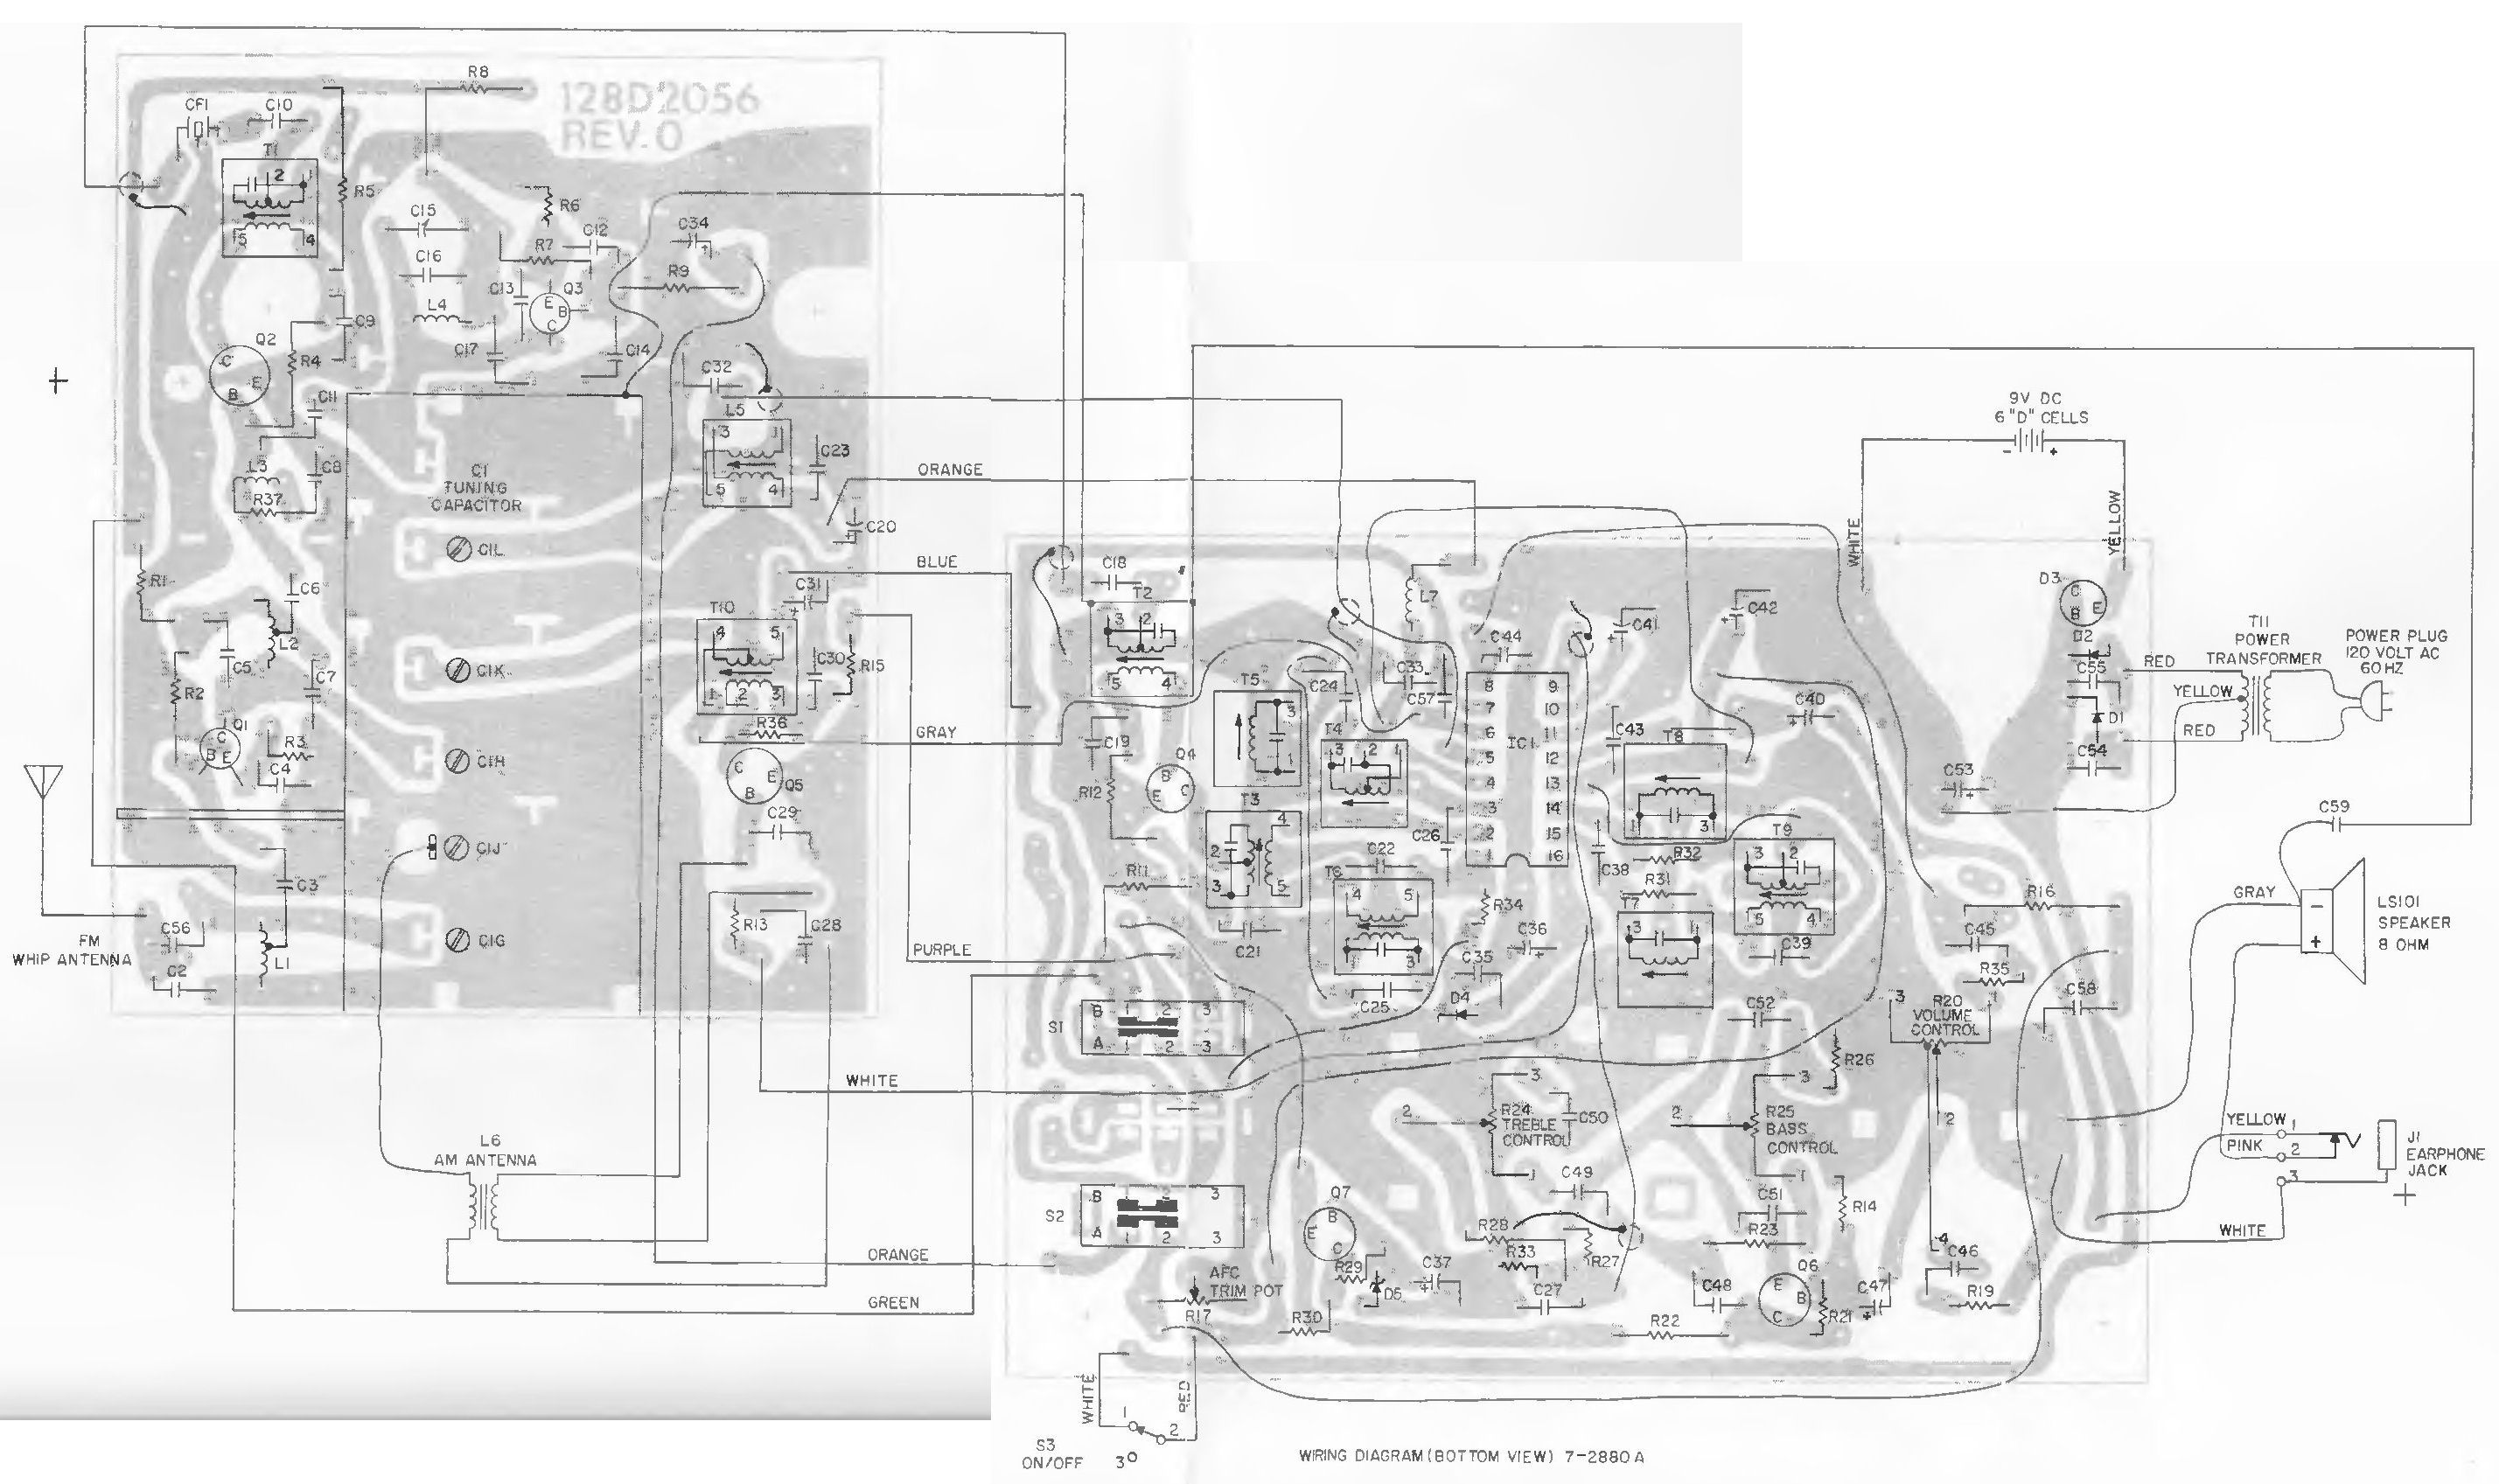 Caterpillar C12 Engine Cooling Diagram Wiring Library Motor Revo